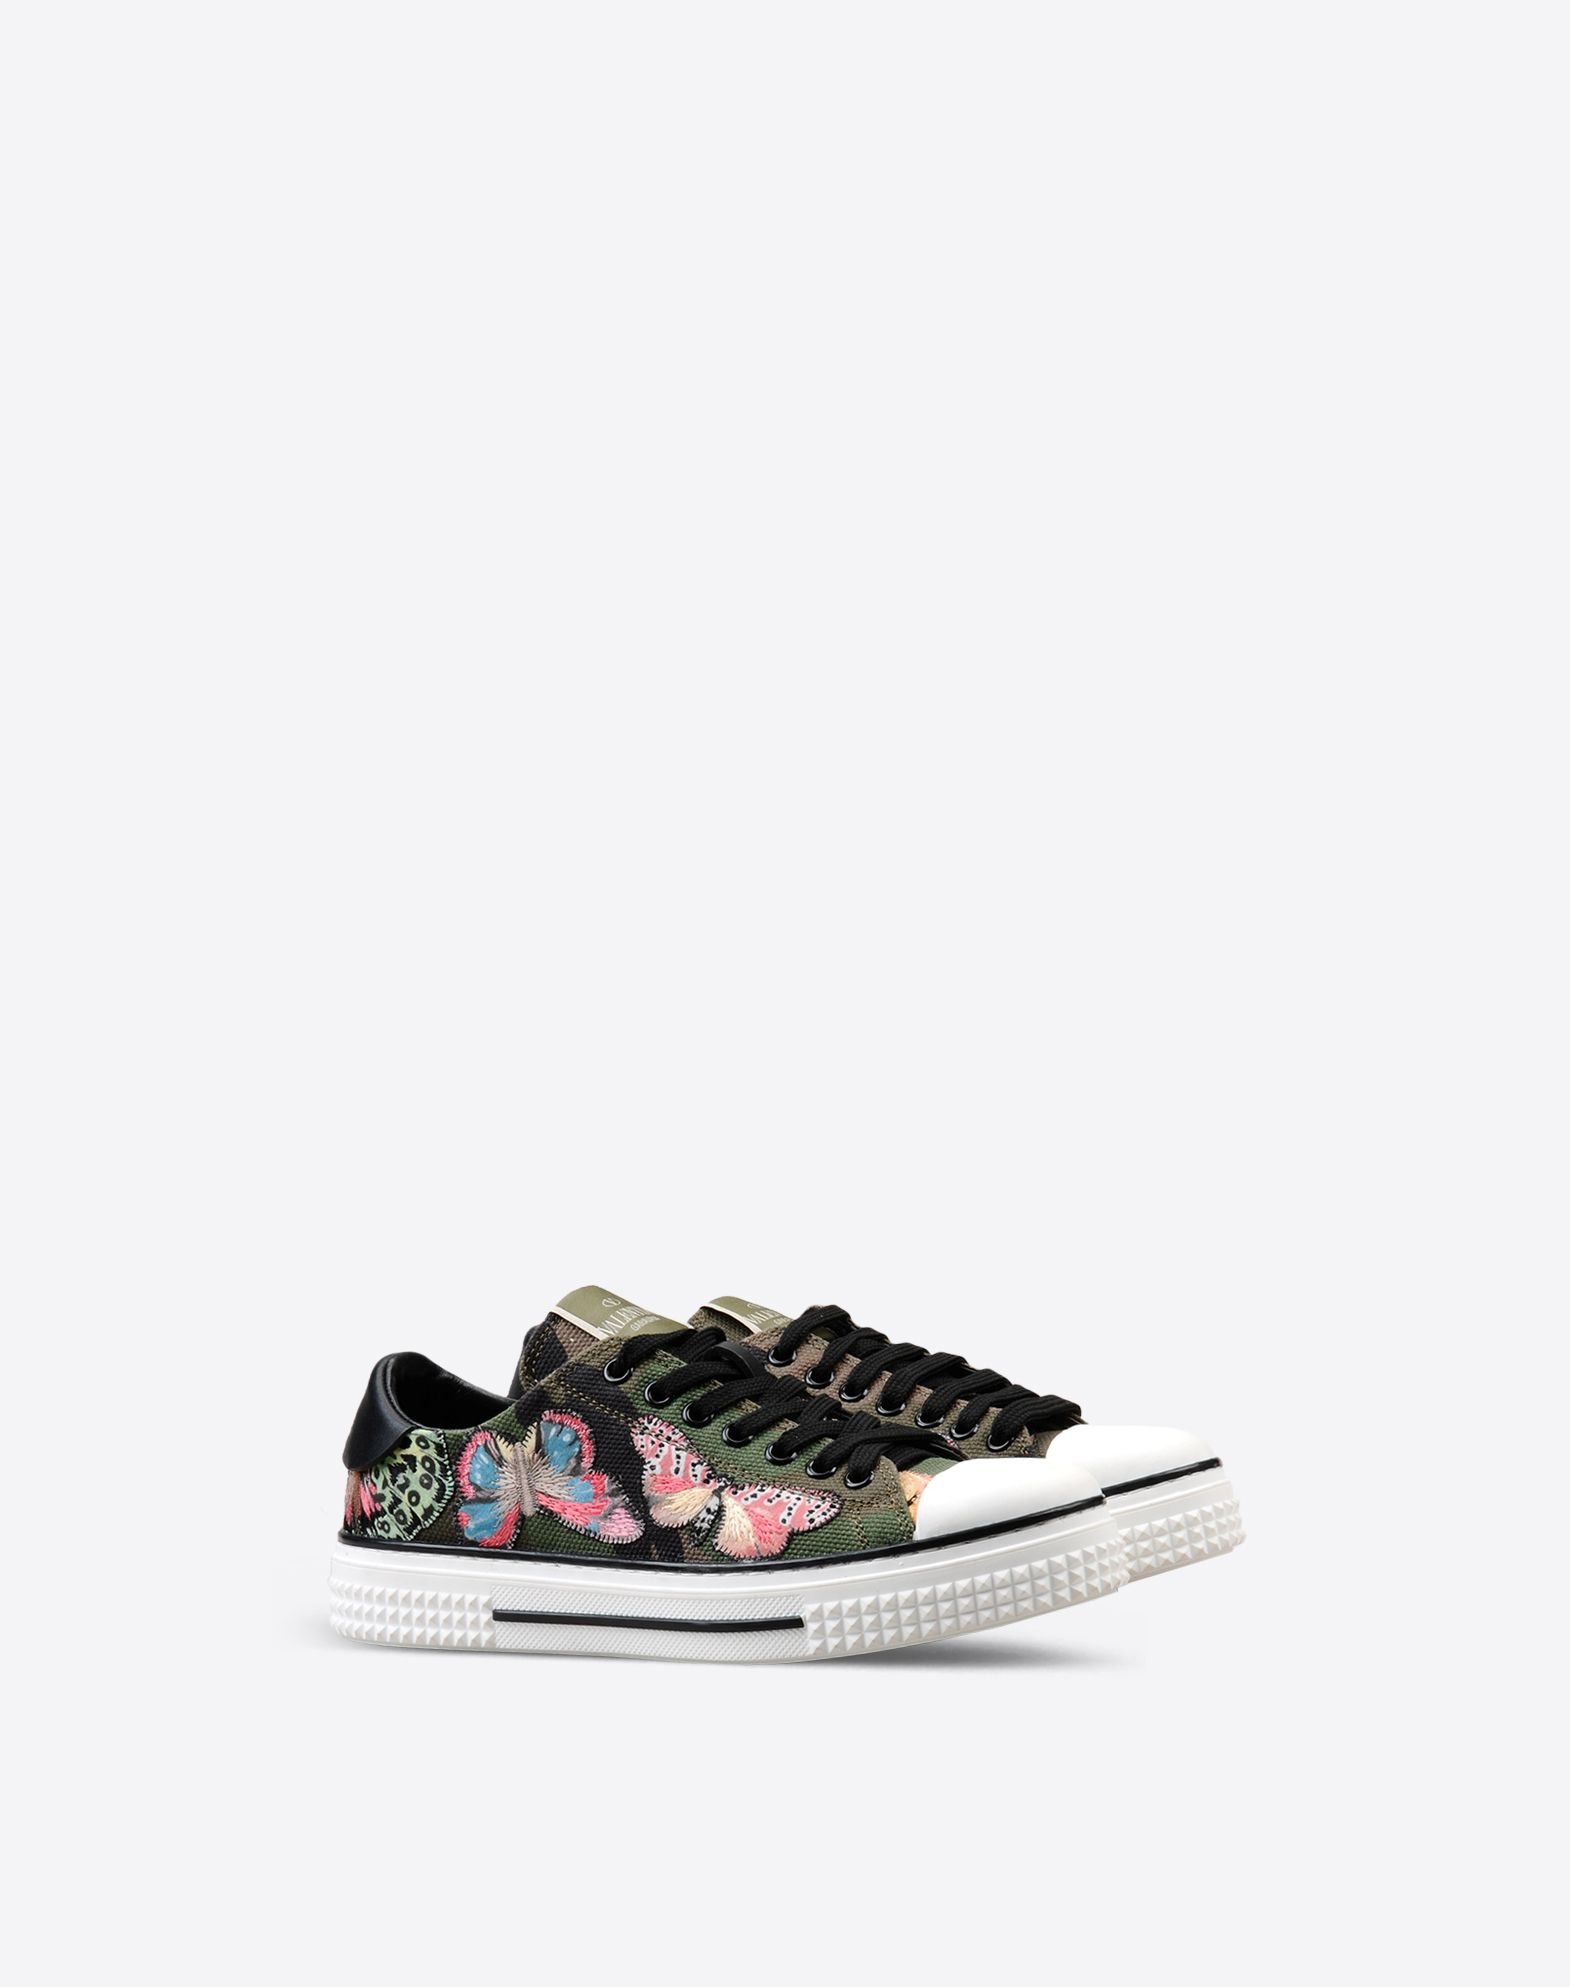 VALENTINO Contrasting applications Logo detail Canvas Multicolour Pattern Laces Rubber sole Round toeline  44910352fe